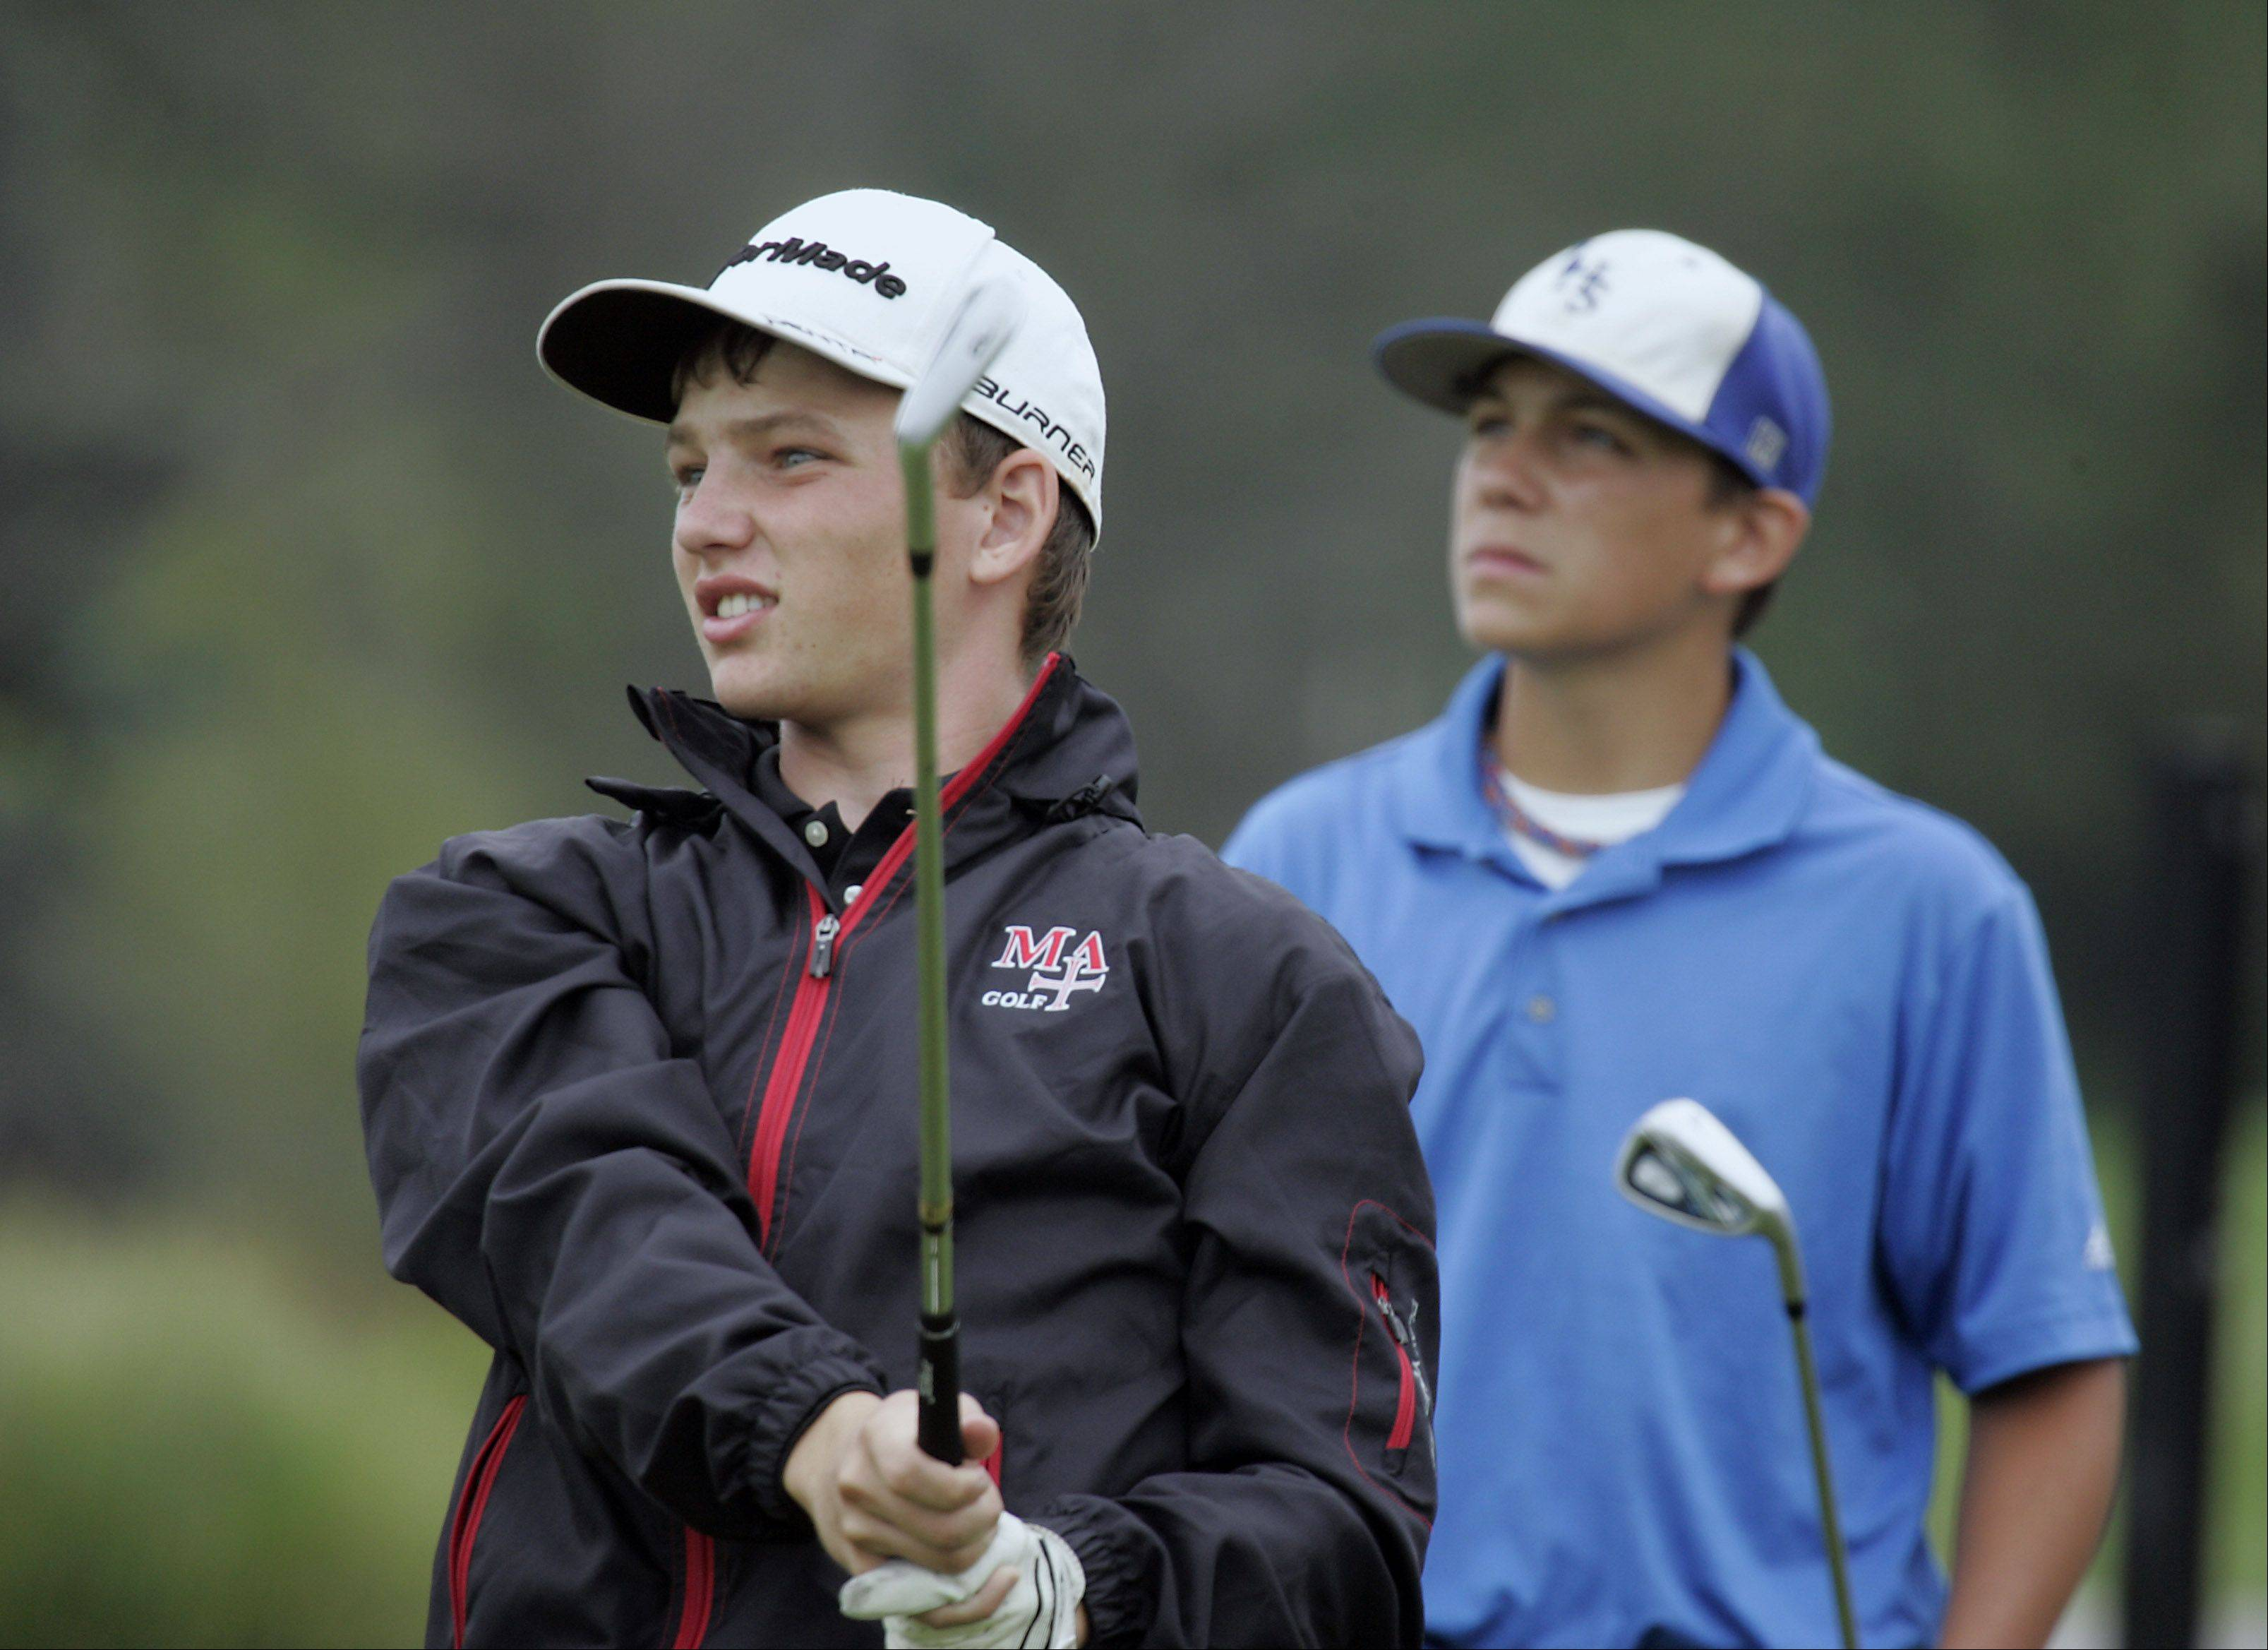 Marmion's Joe Fritz, watches his tee shot on the 8th hole as Larkin's Dan Lenz, follows the ball during the Geneva boys golf invite Thursday at Mill Creek Golf Club in Geneva.